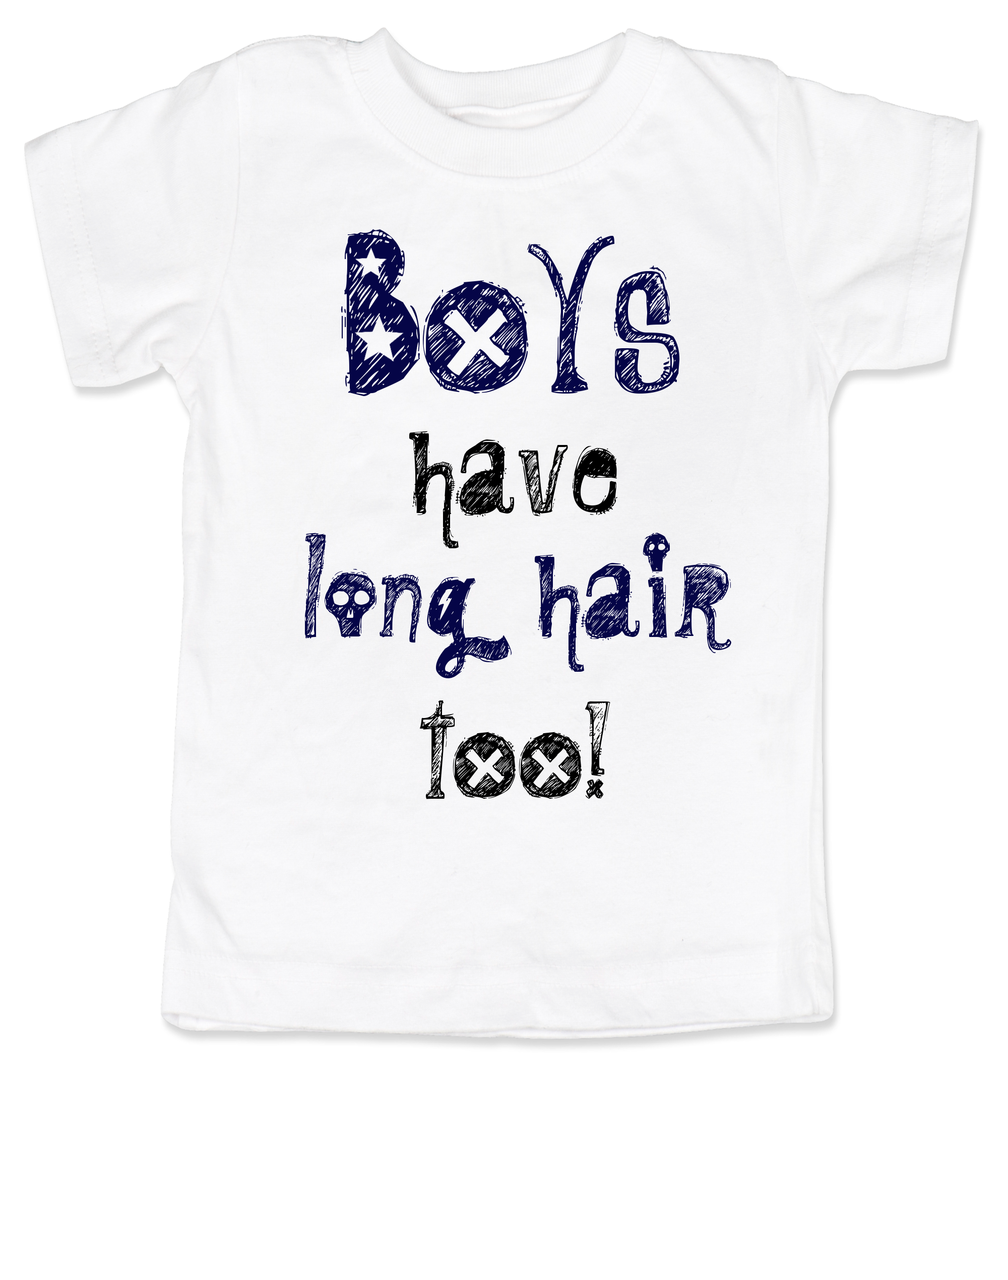 I Just have better hair than you Graphic Shirt Sz 5//6 Boys Youth I/'m a boy